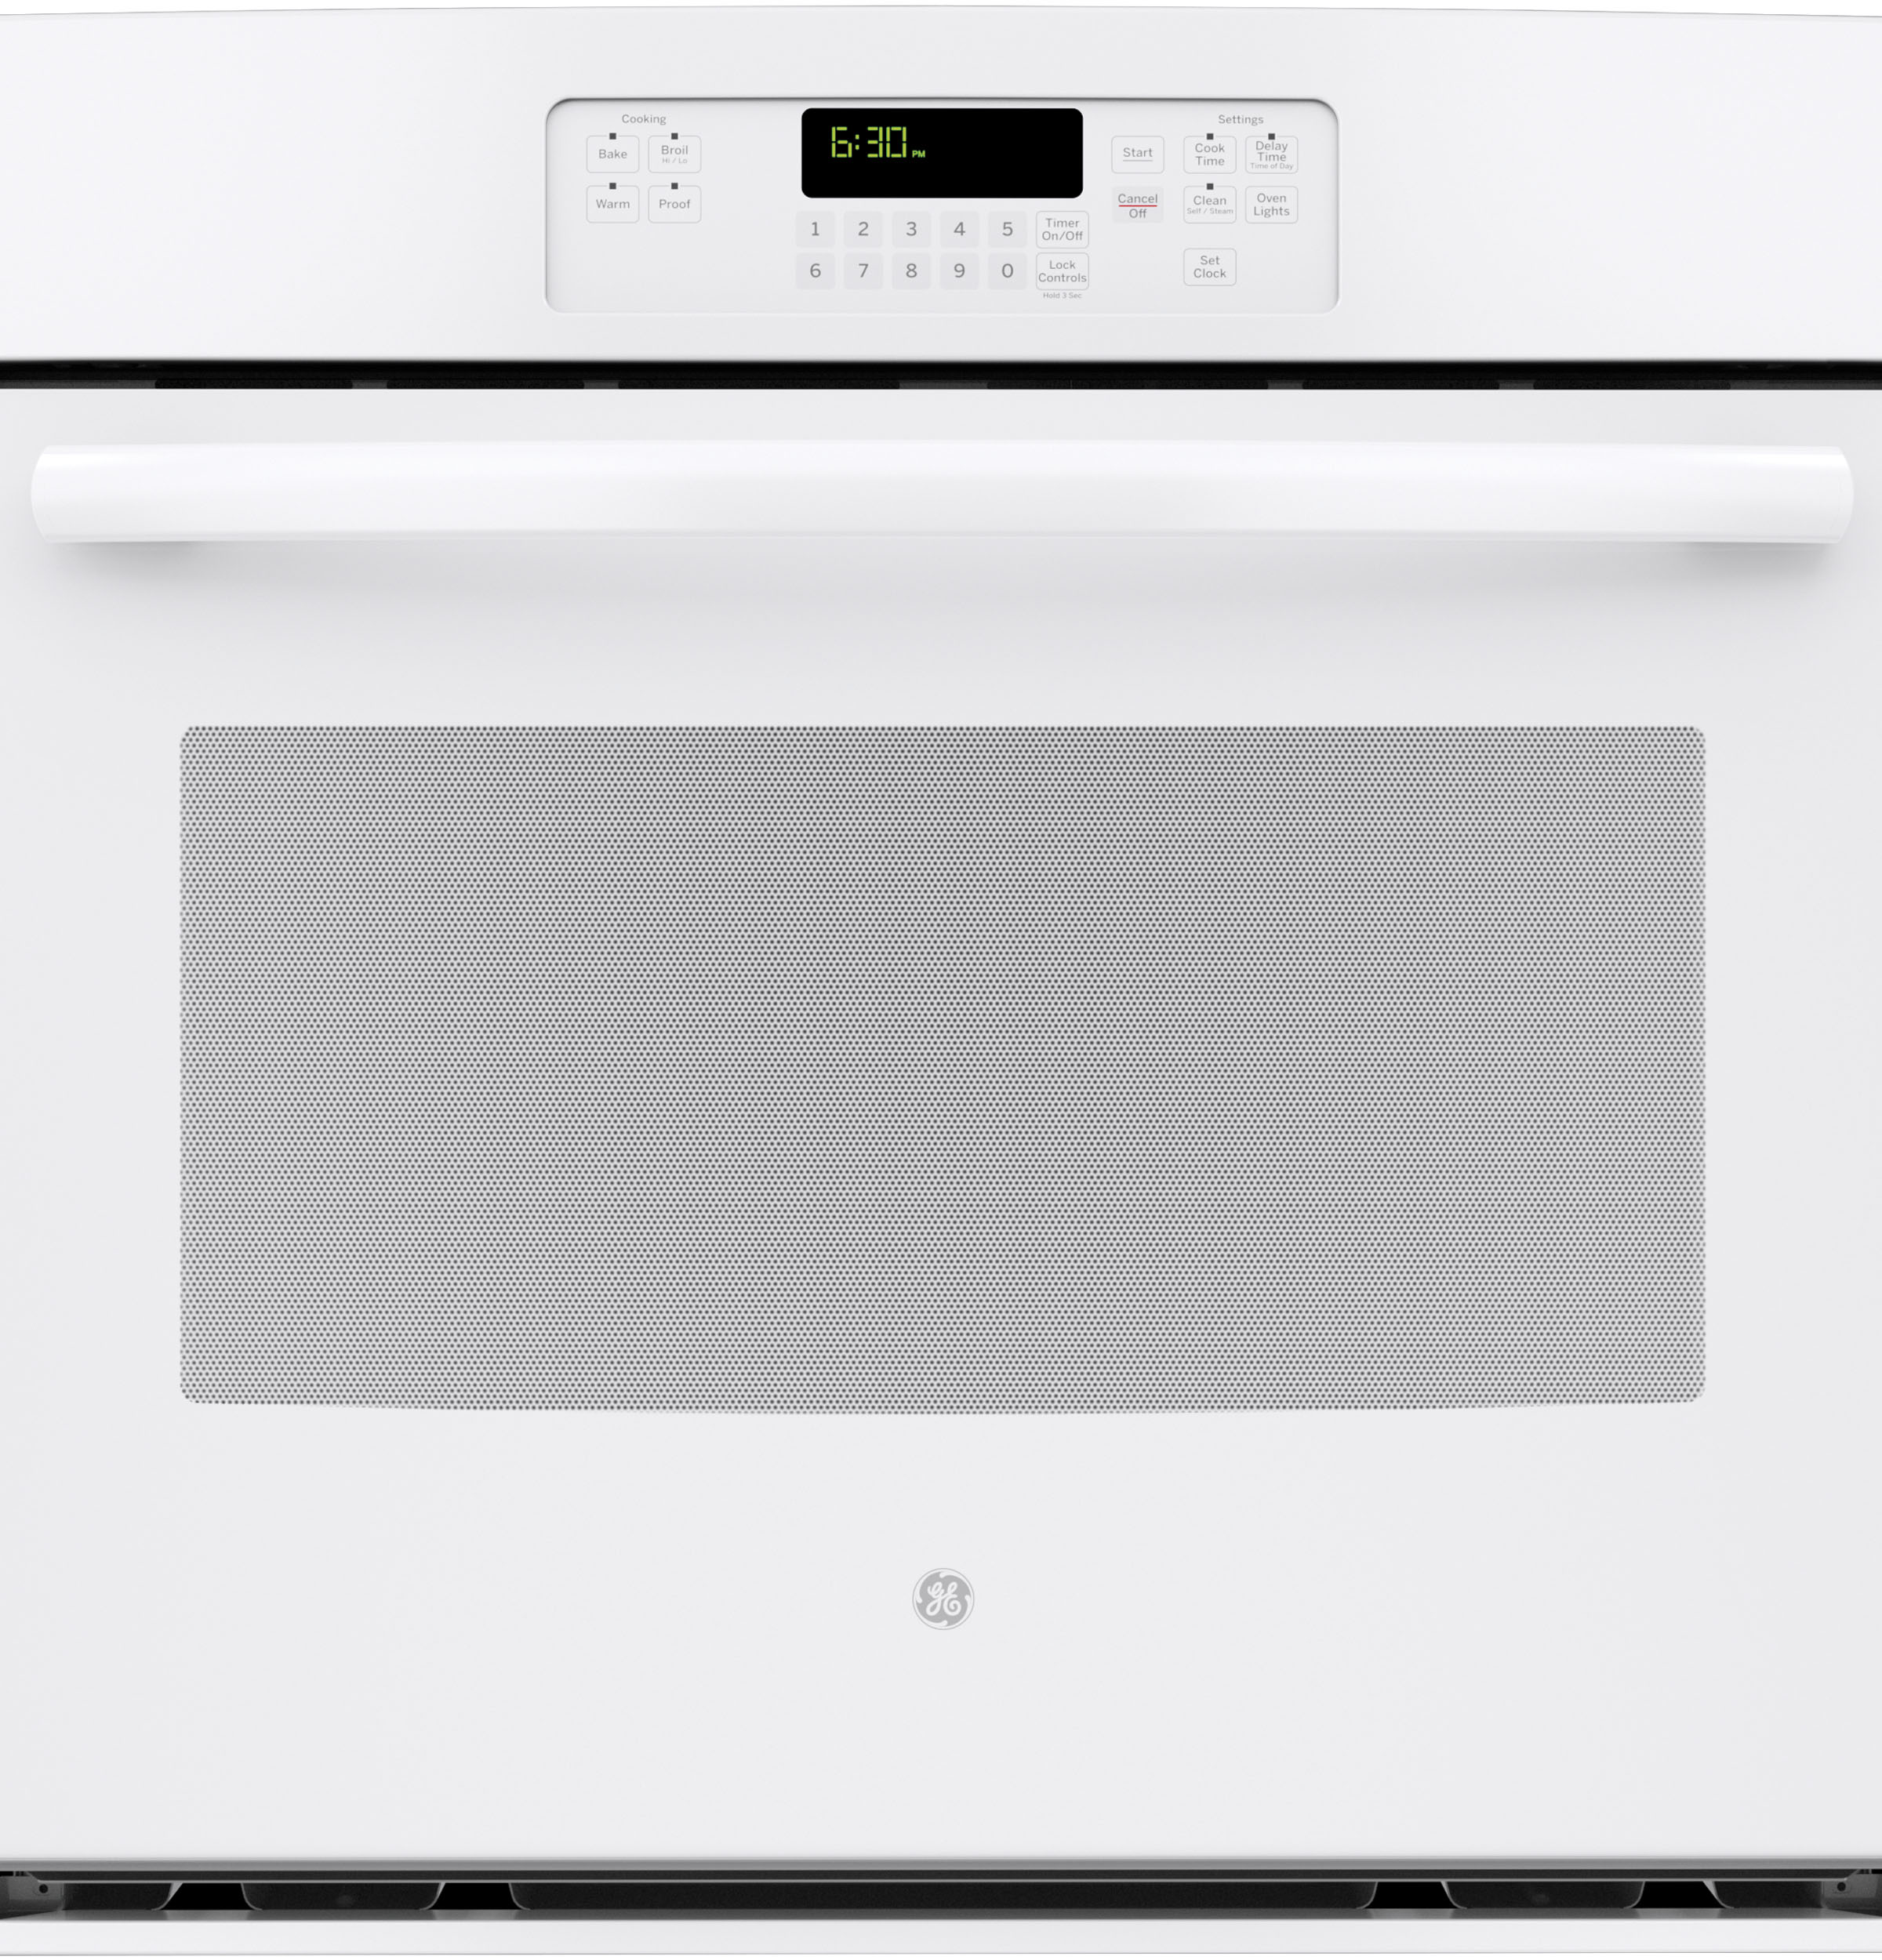 Ge 30 built in single wall oven jt3000dfww ge appliances product image sciox Gallery